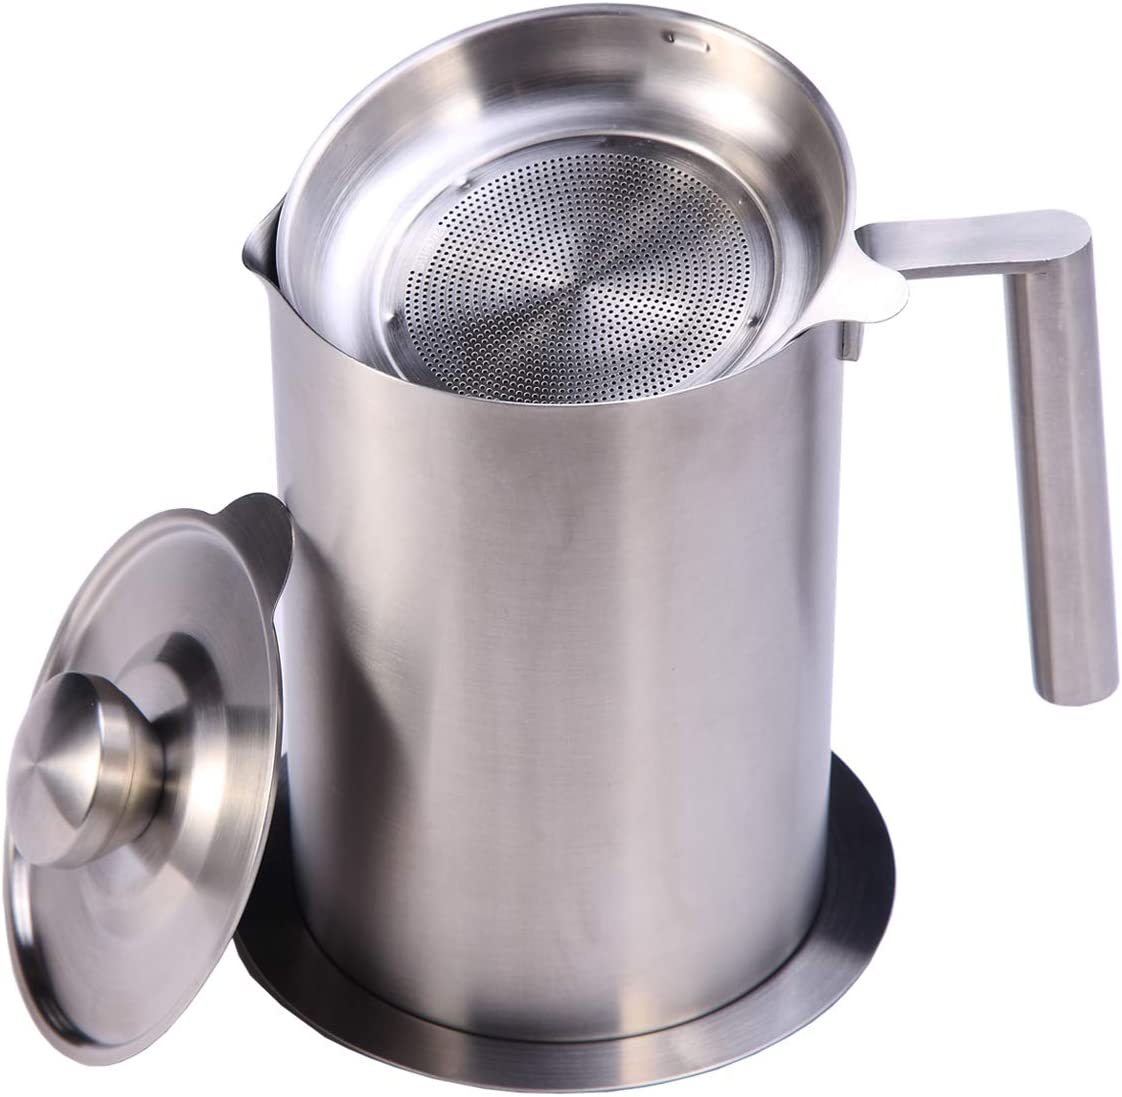 Sumerflos All 304 Stainless Steel Grease Strainer and Container - 1.8 L/1.9 Quart Large Oil Storage Pot Grease Keeper with Dust-Proof Lid & Easy Grip Handle - for Bacon, Kitchen Cooking or Frying Oil